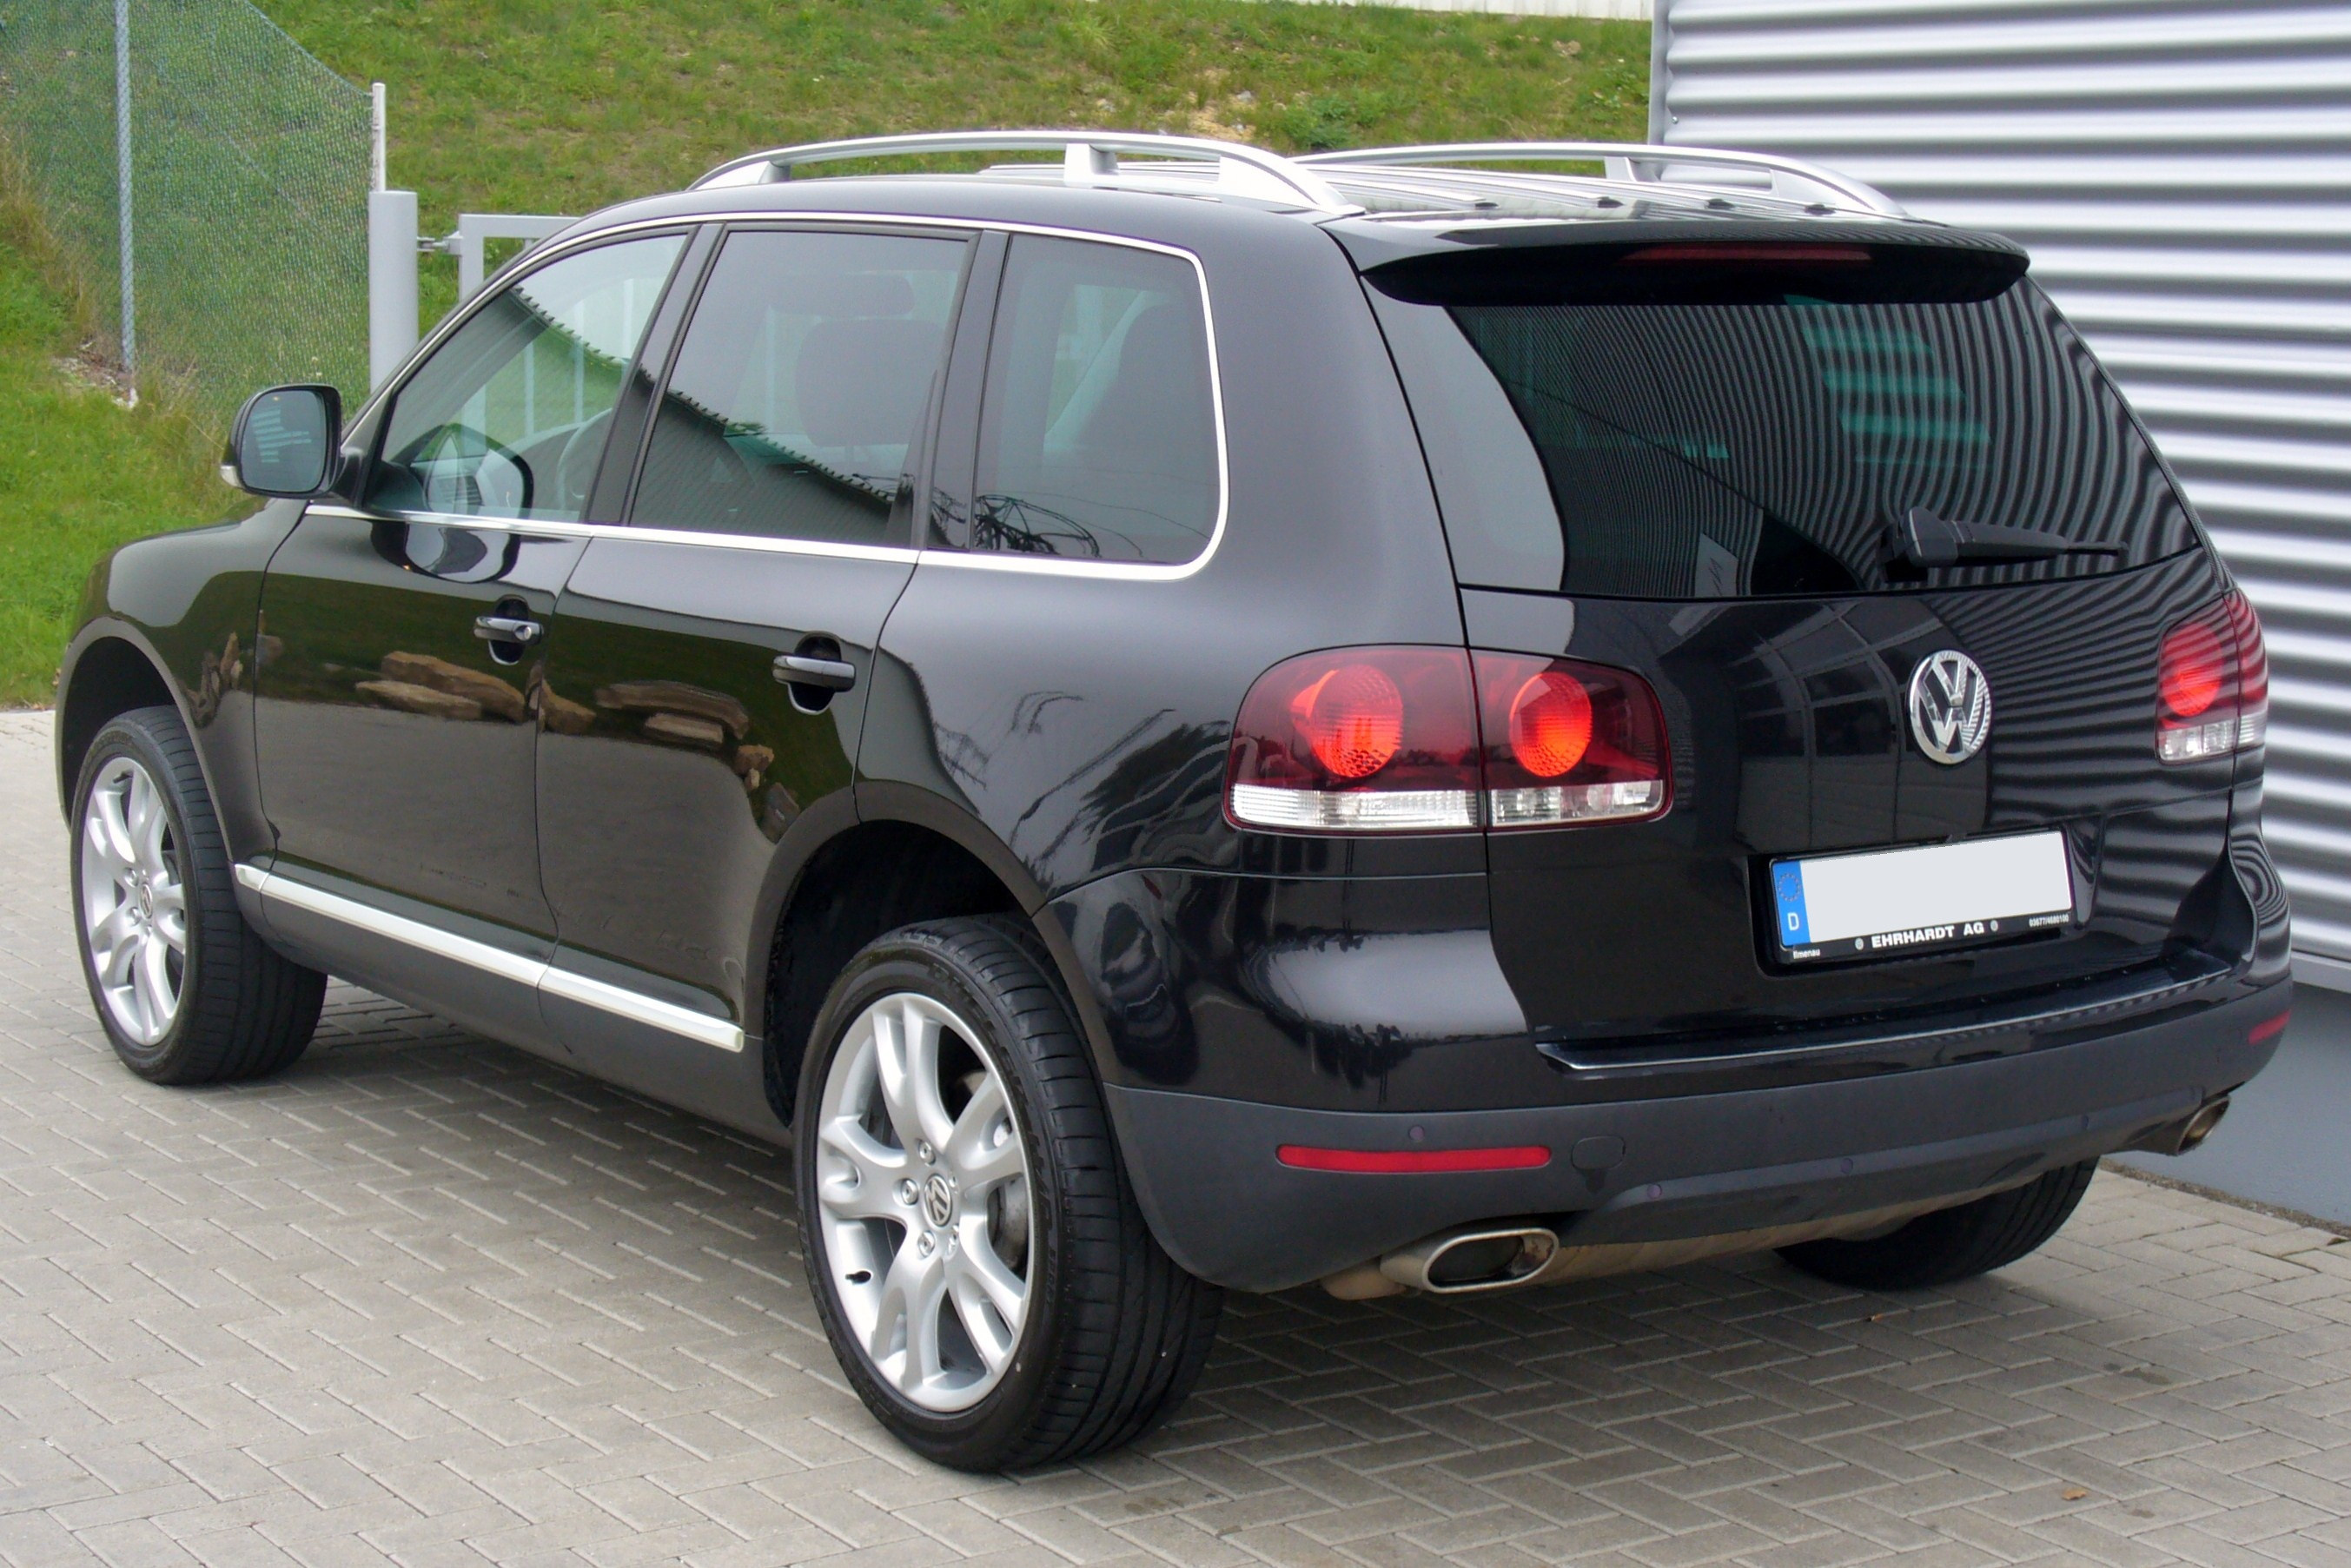 file vw touareg i v6 tdi black magic heck jpg wikimedia commons. Black Bedroom Furniture Sets. Home Design Ideas